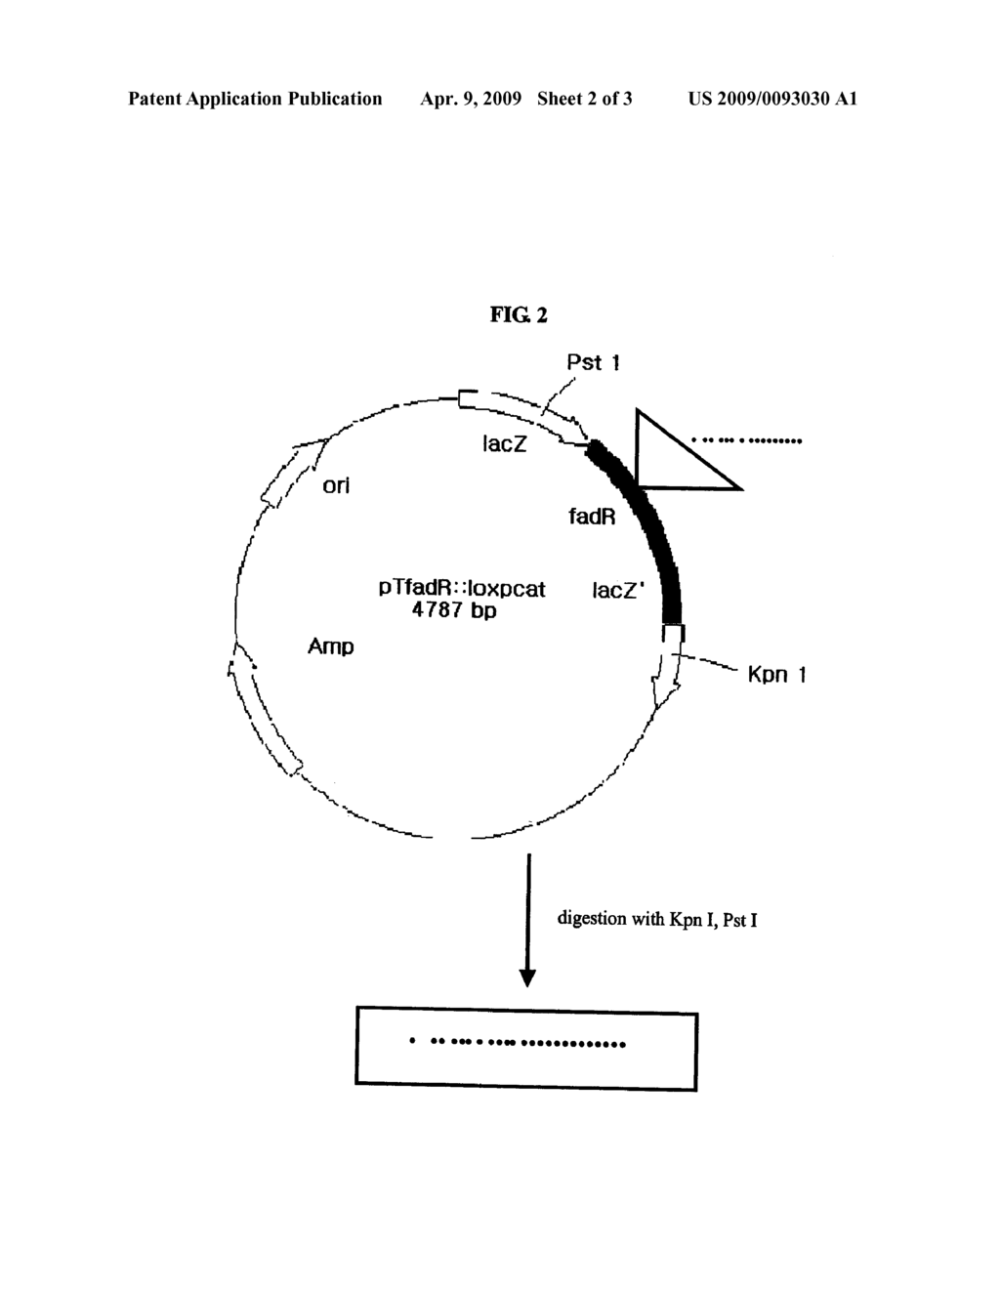 medium resolution of fadr knock out microorganism and methods for producing l threonine diagram schematic and image 03